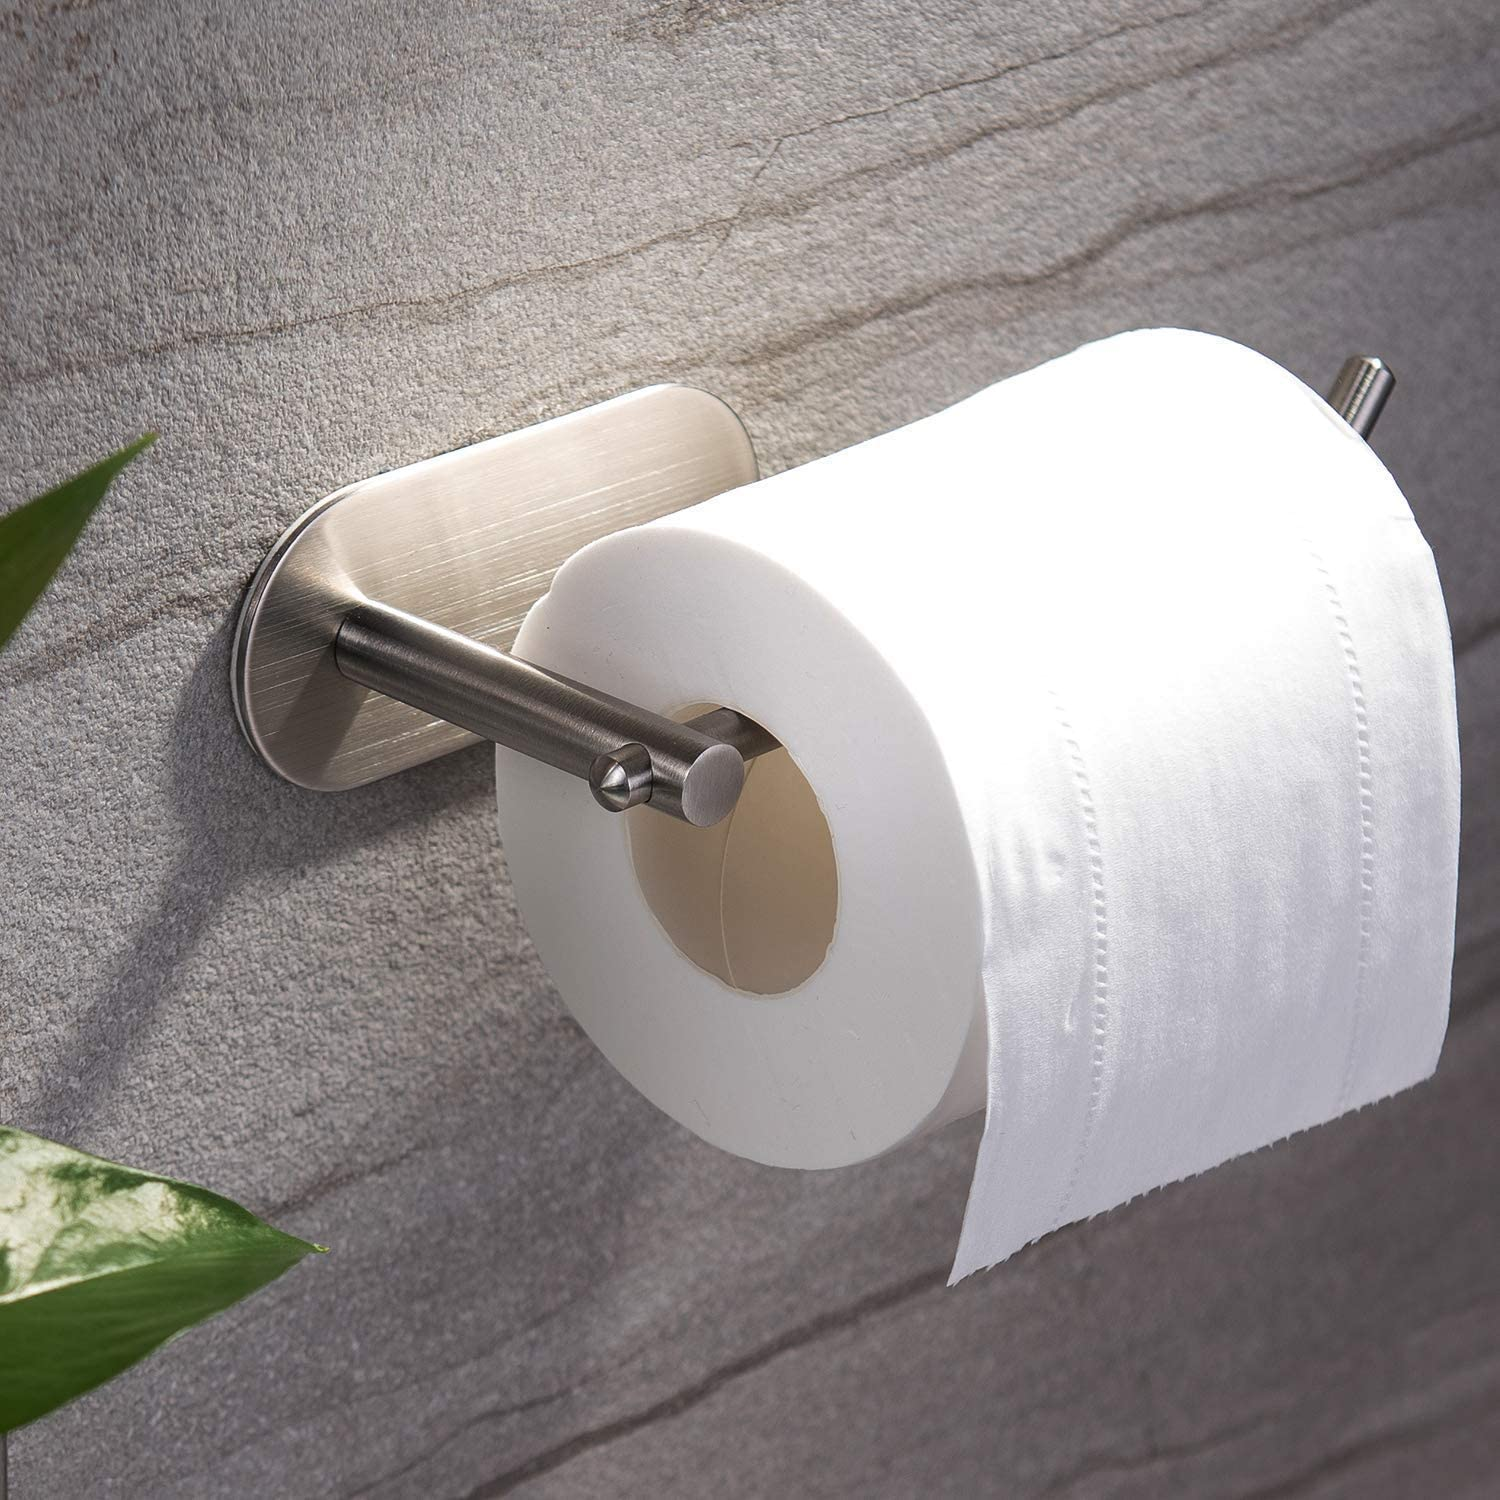 Toilet Paper Holders Self-Adhesive Toilet Roll Holder for Bathroom /& Kitchen Standing No Drilling Wall Mount Stainless Steel Black